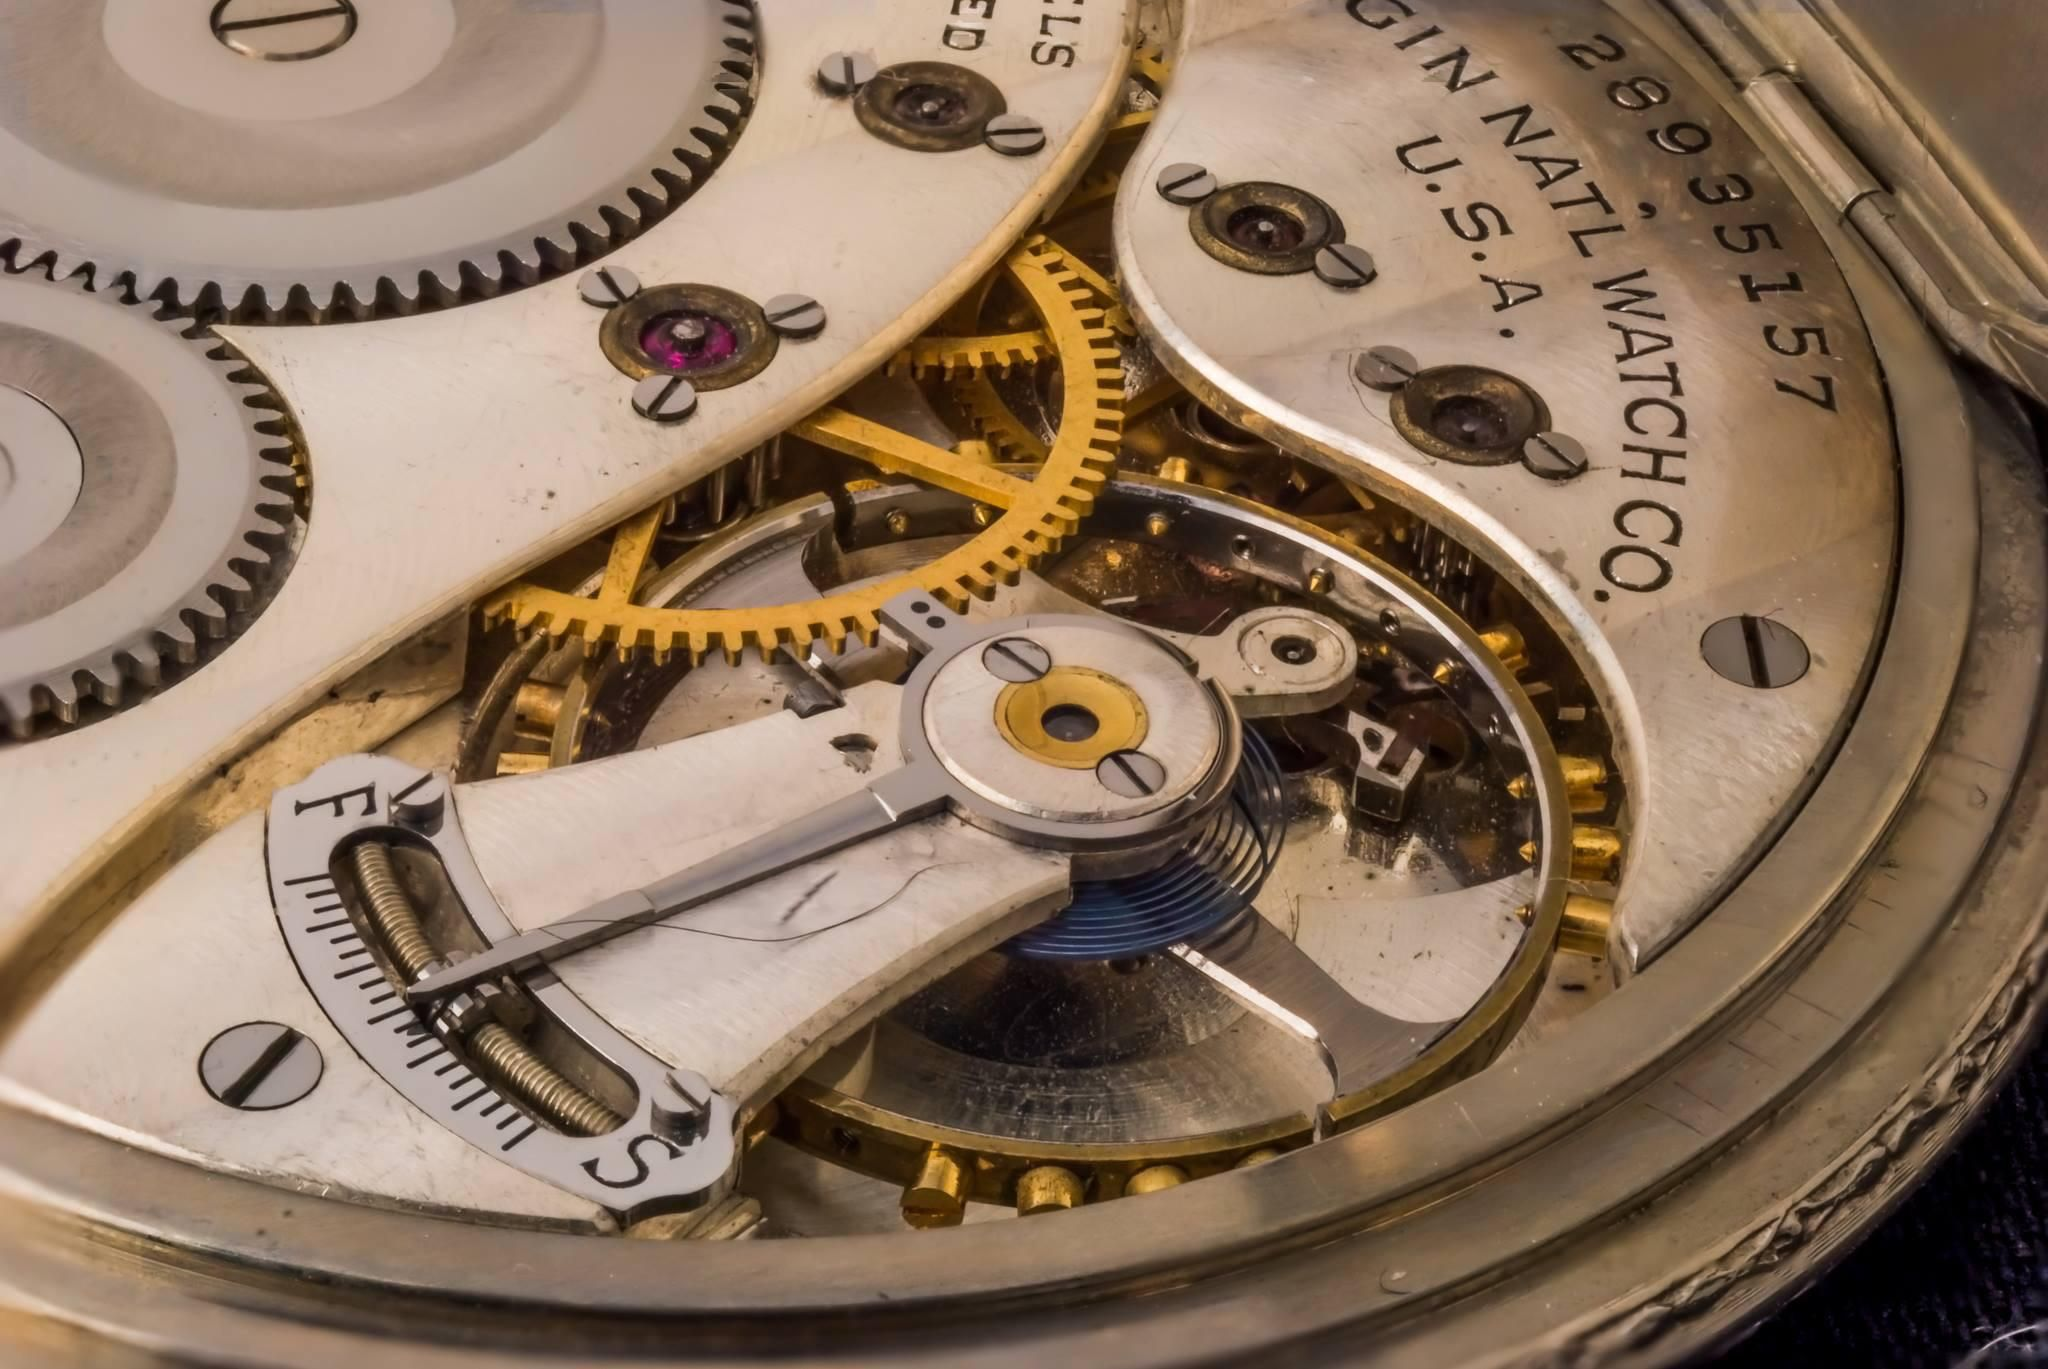 ITAP of a pocket watch#PHOTO #CAPTURE #NATURE #INCREDIBLE